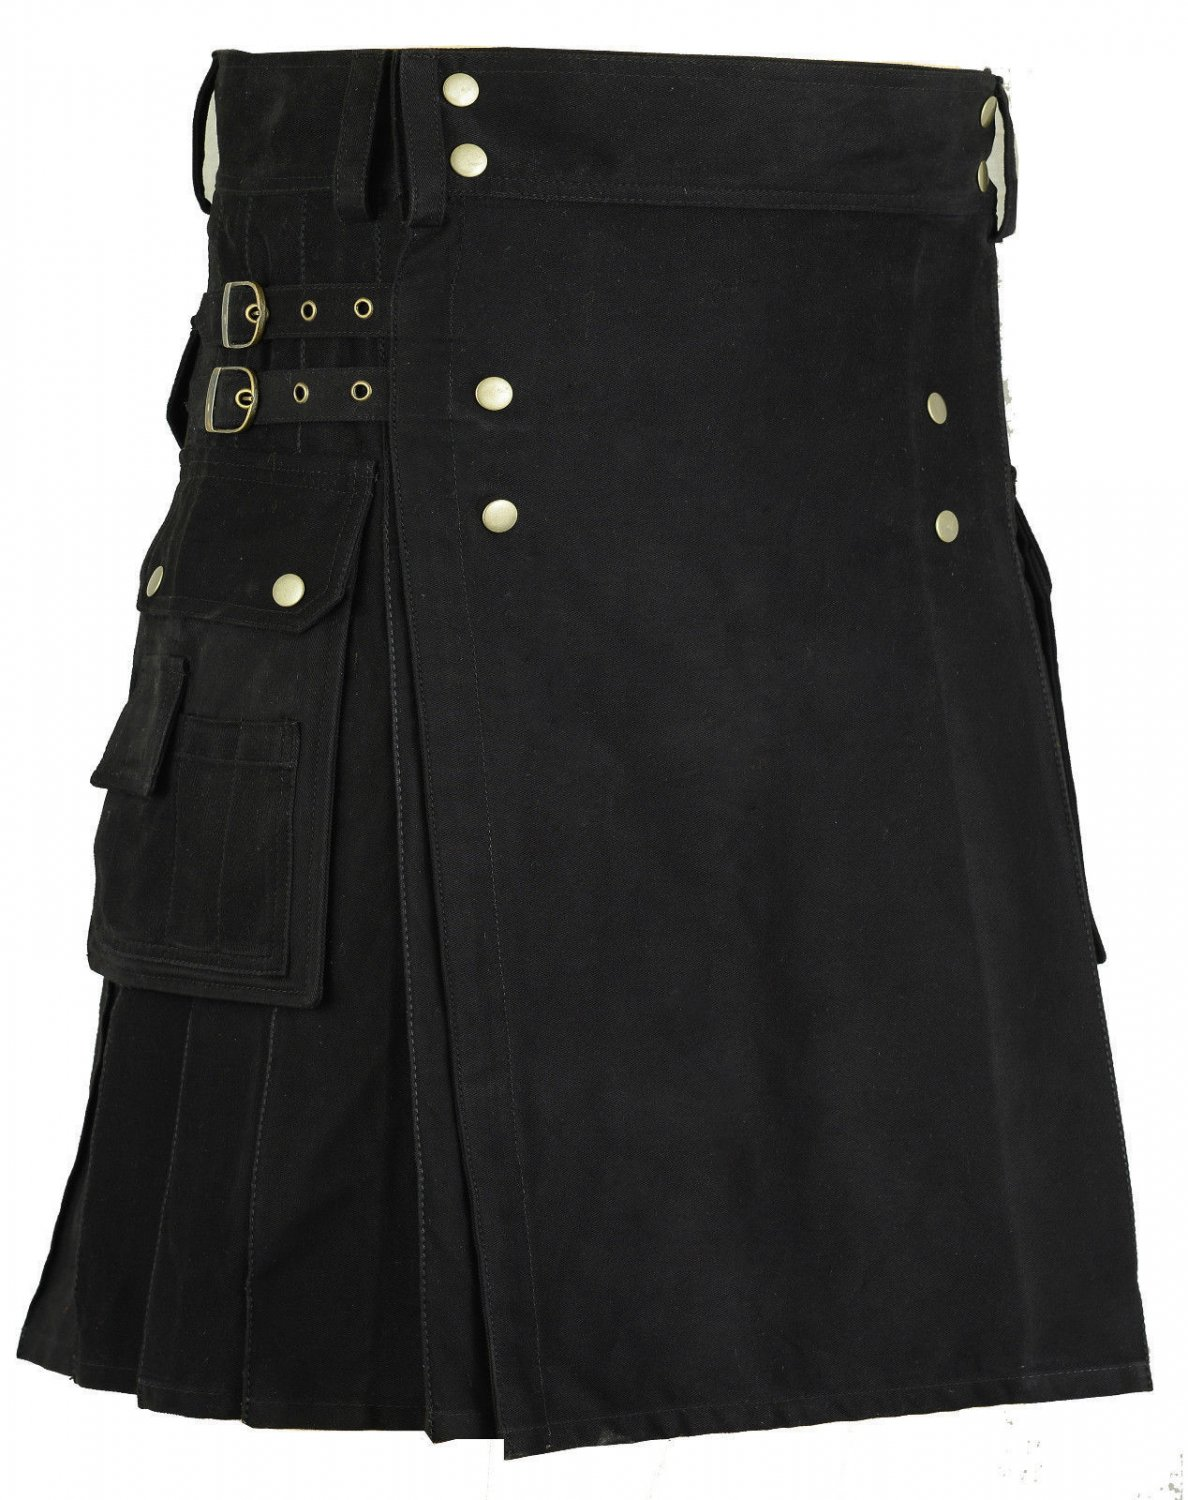 Gothic Black Cotton Outdoor Kilt for Men 44 Size Utility Kilt with Brass Material